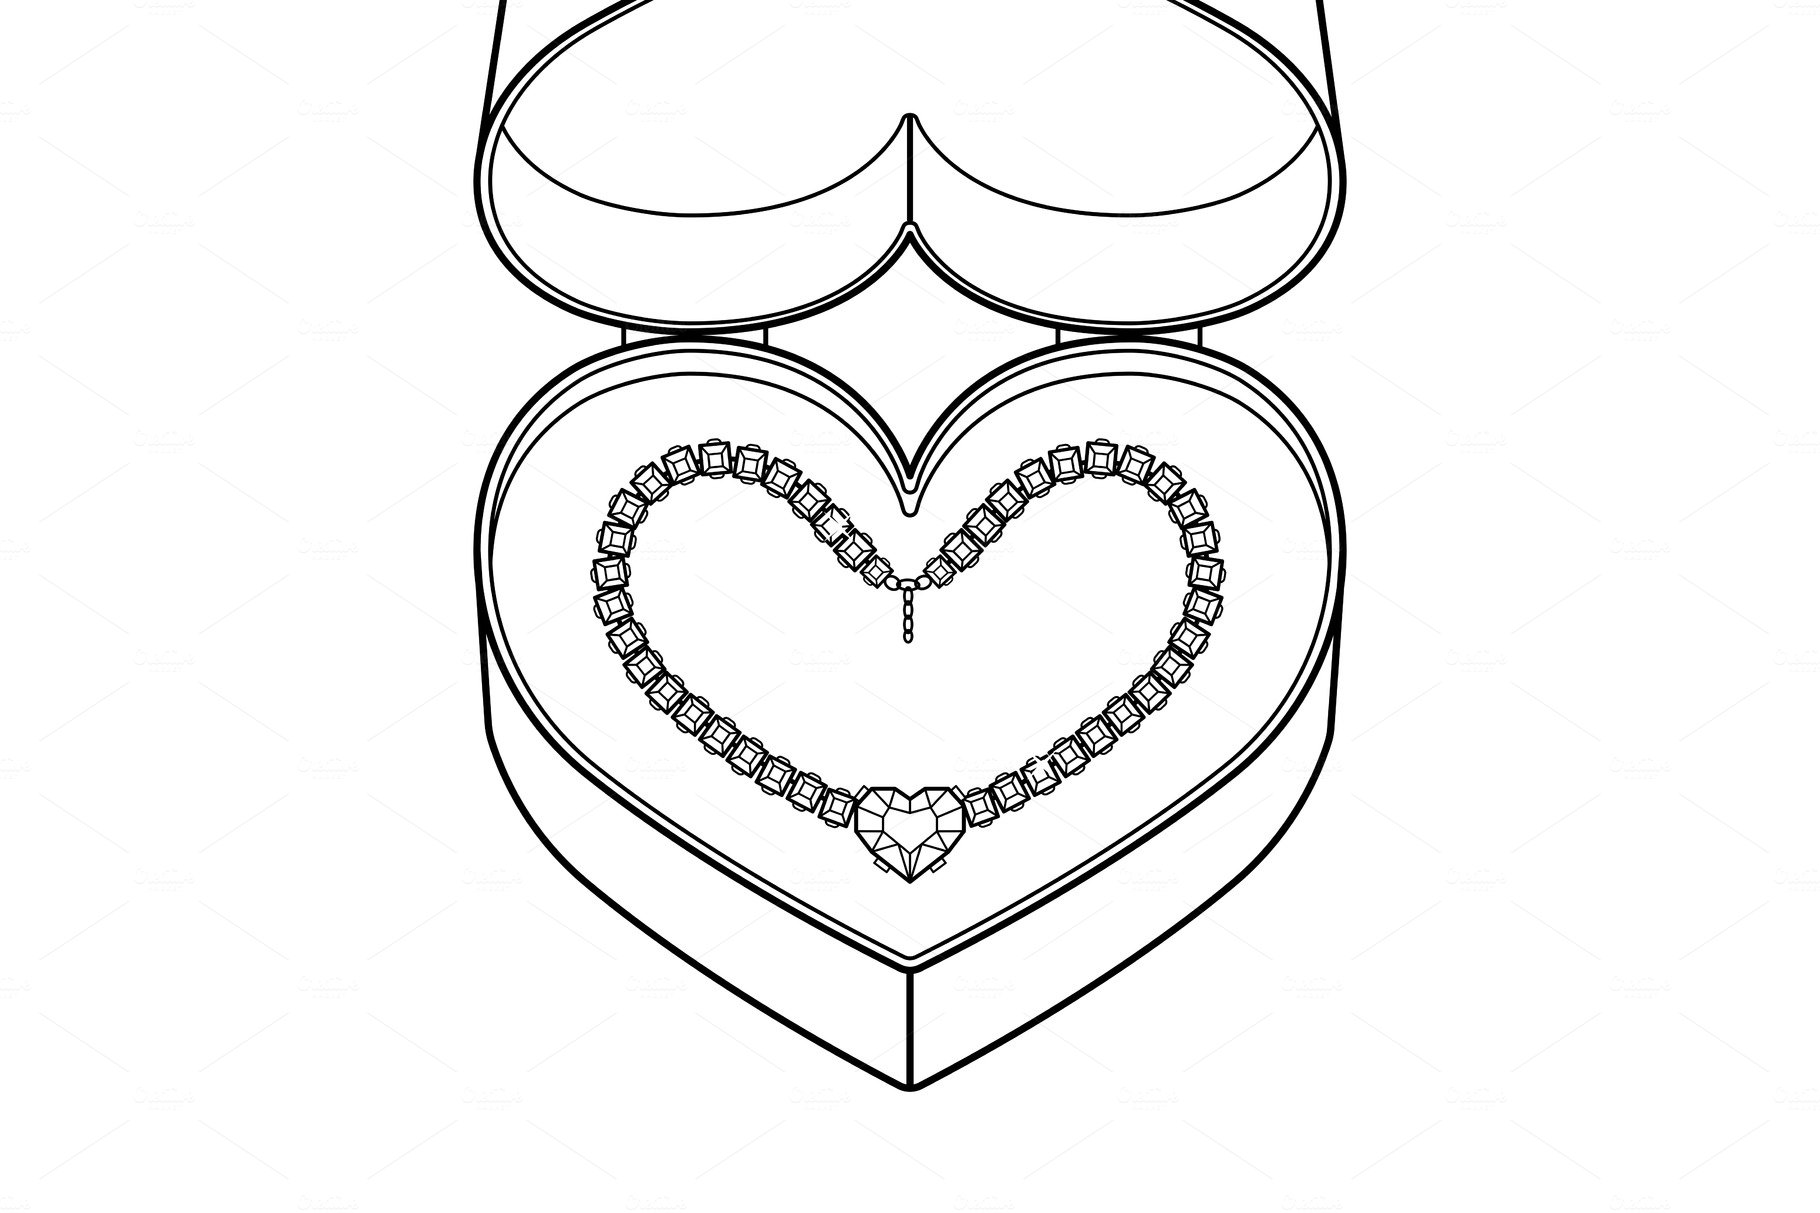 Diamond necklace coloring book vector ~ Graphic Objects